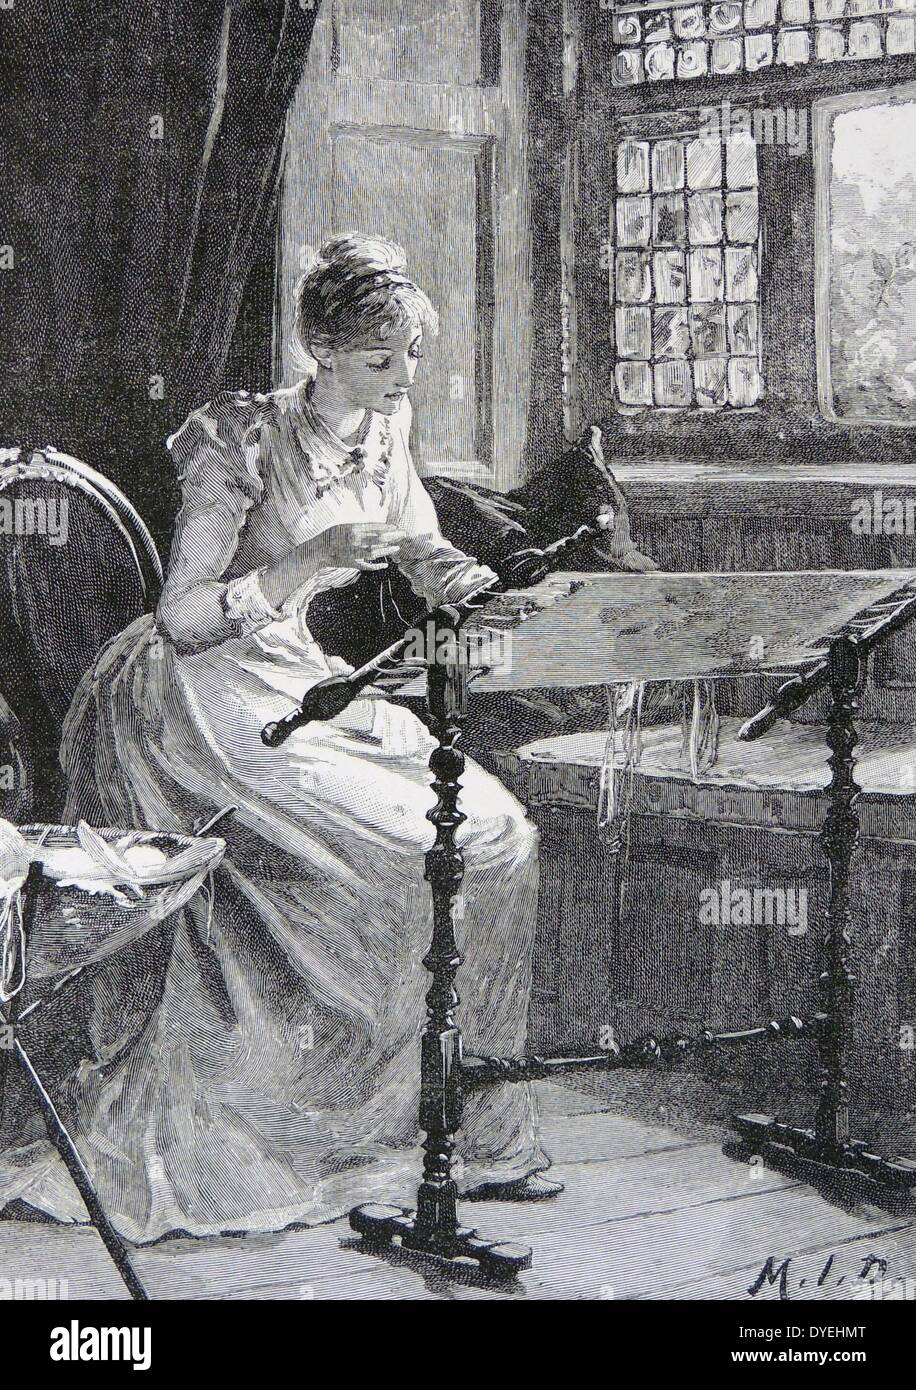 Woman working on a piece of needlepoint - Stock Image